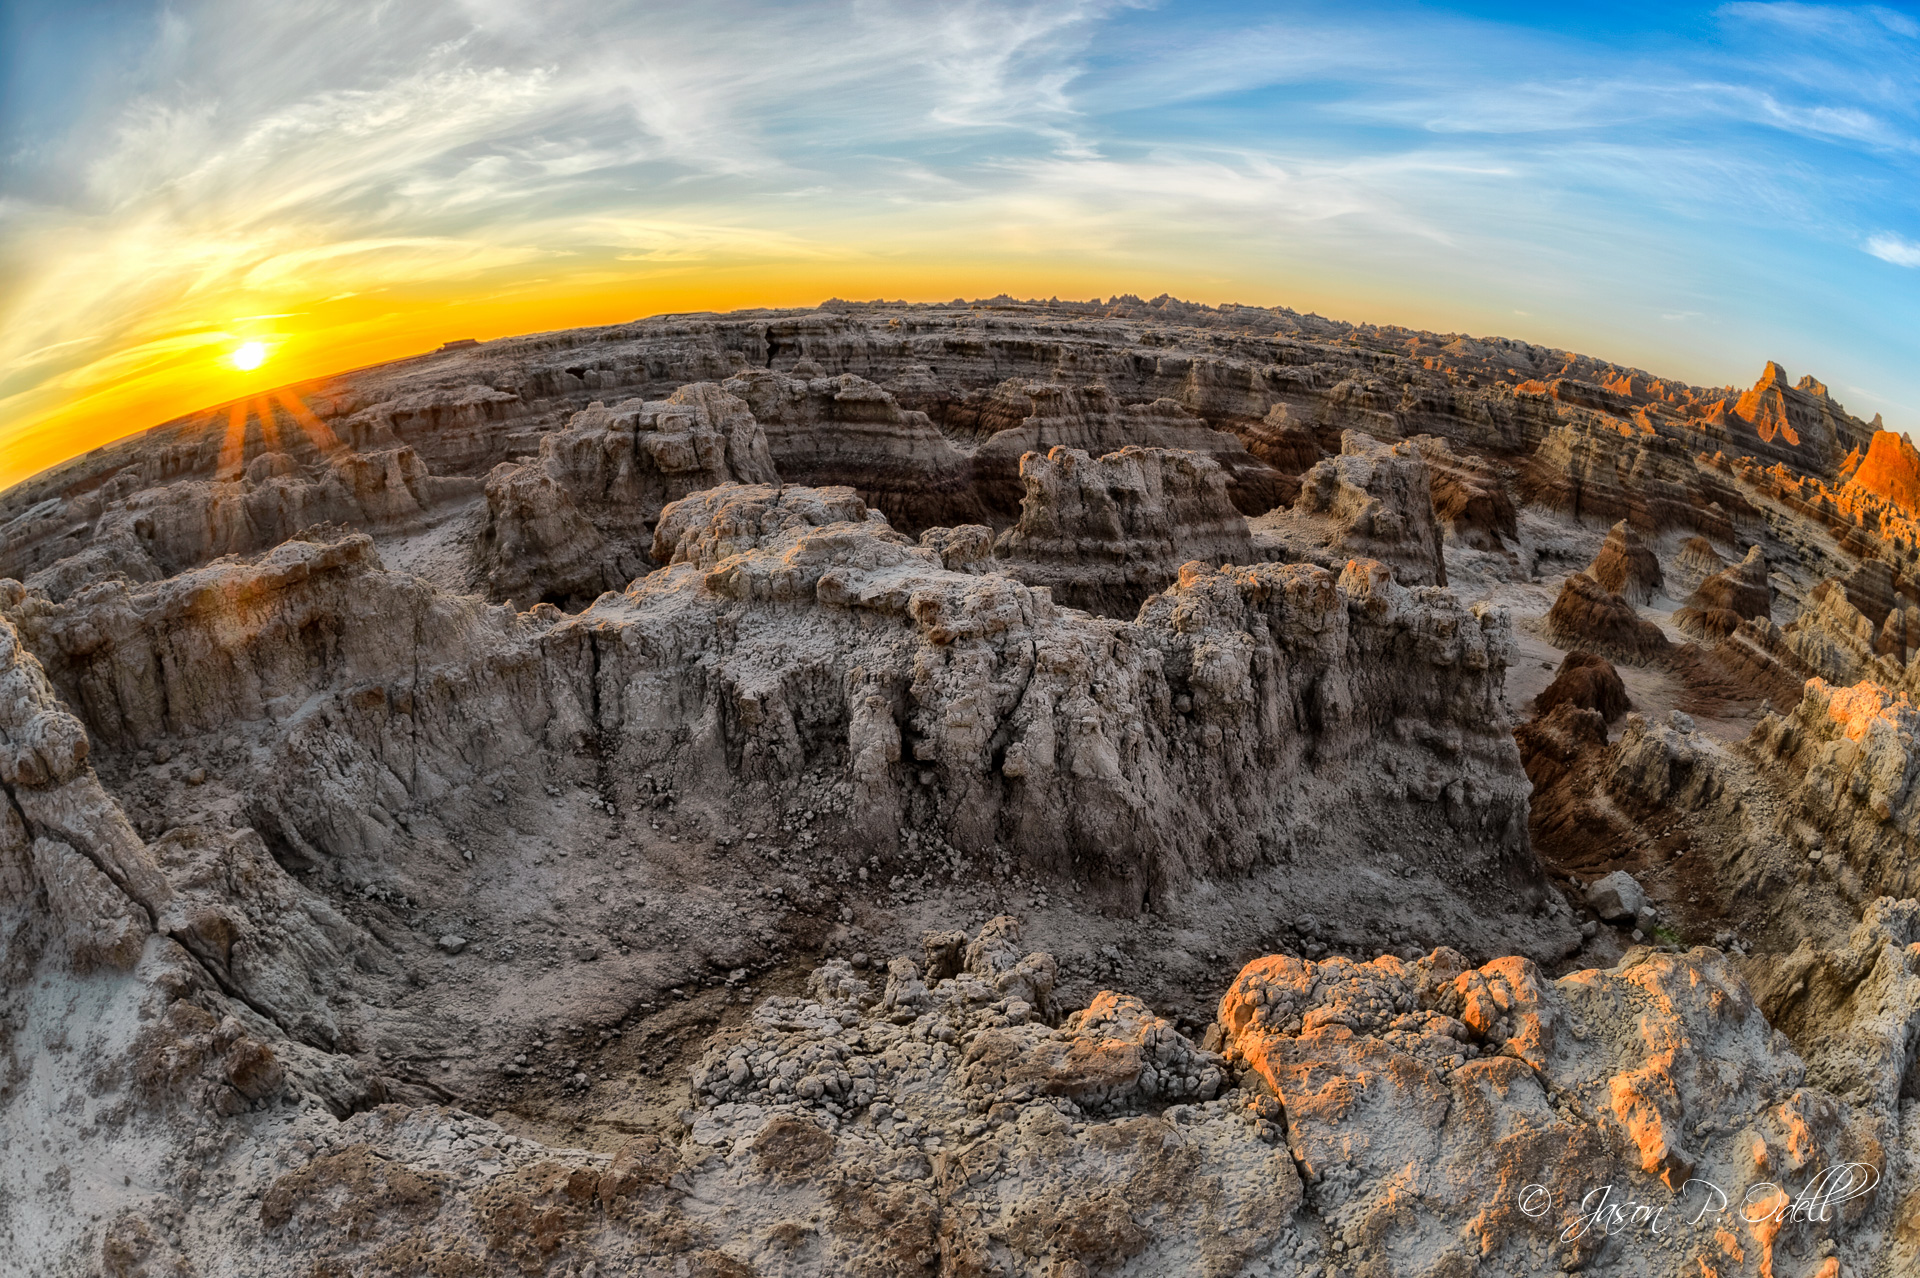 Badlands photo safari 2016 with Jason P. Odell